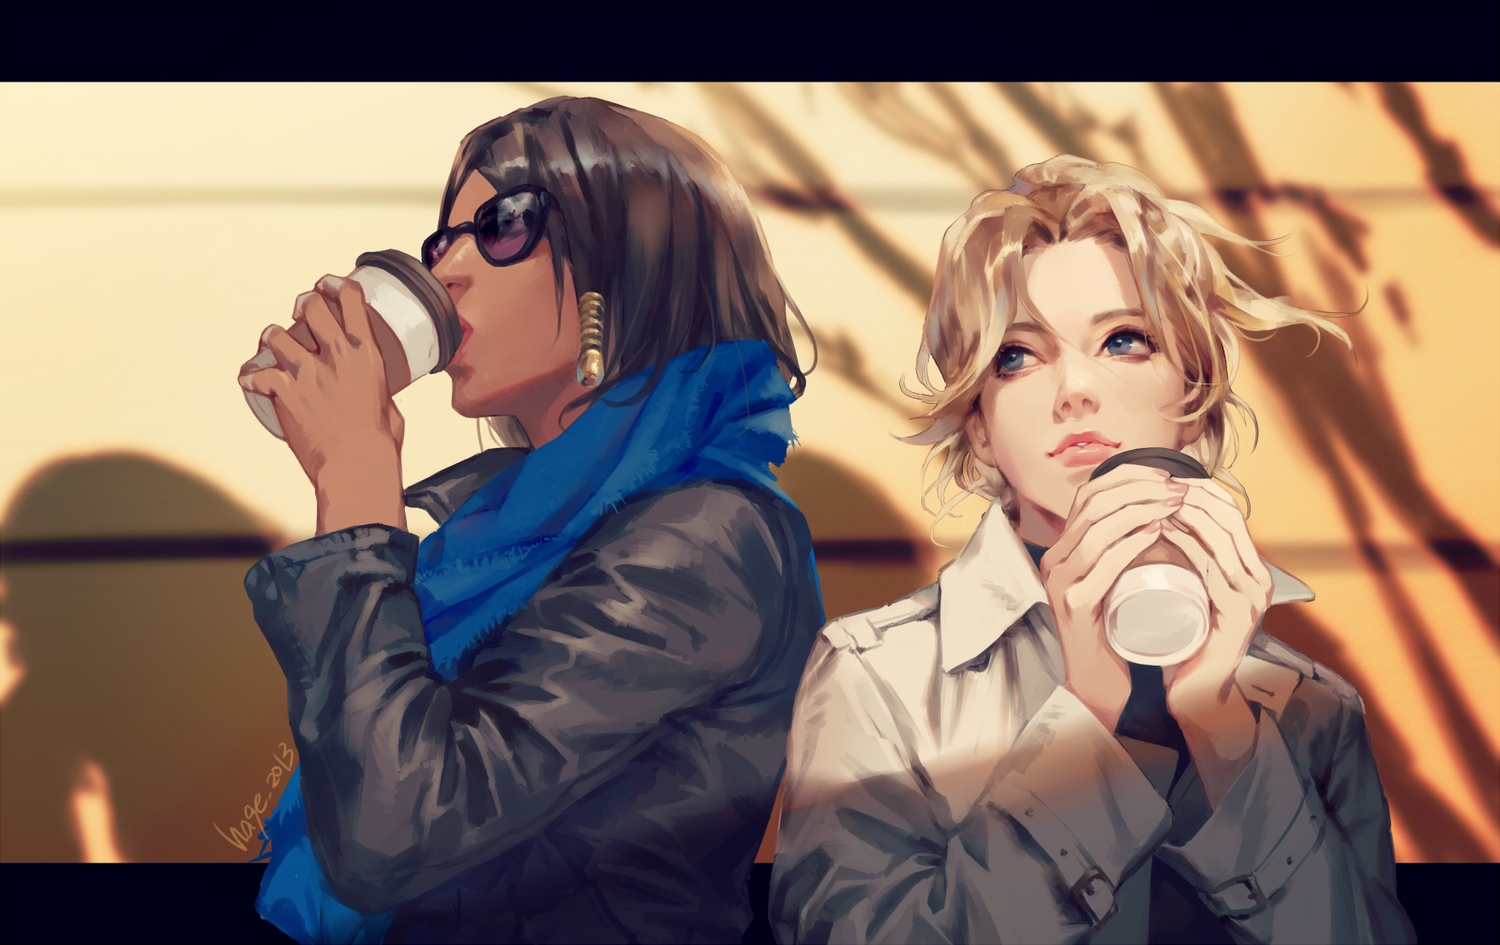 2girls drink h@ge mercy_(overwatch) overwatch pharah_(overwatch) realistic signed sunglasses